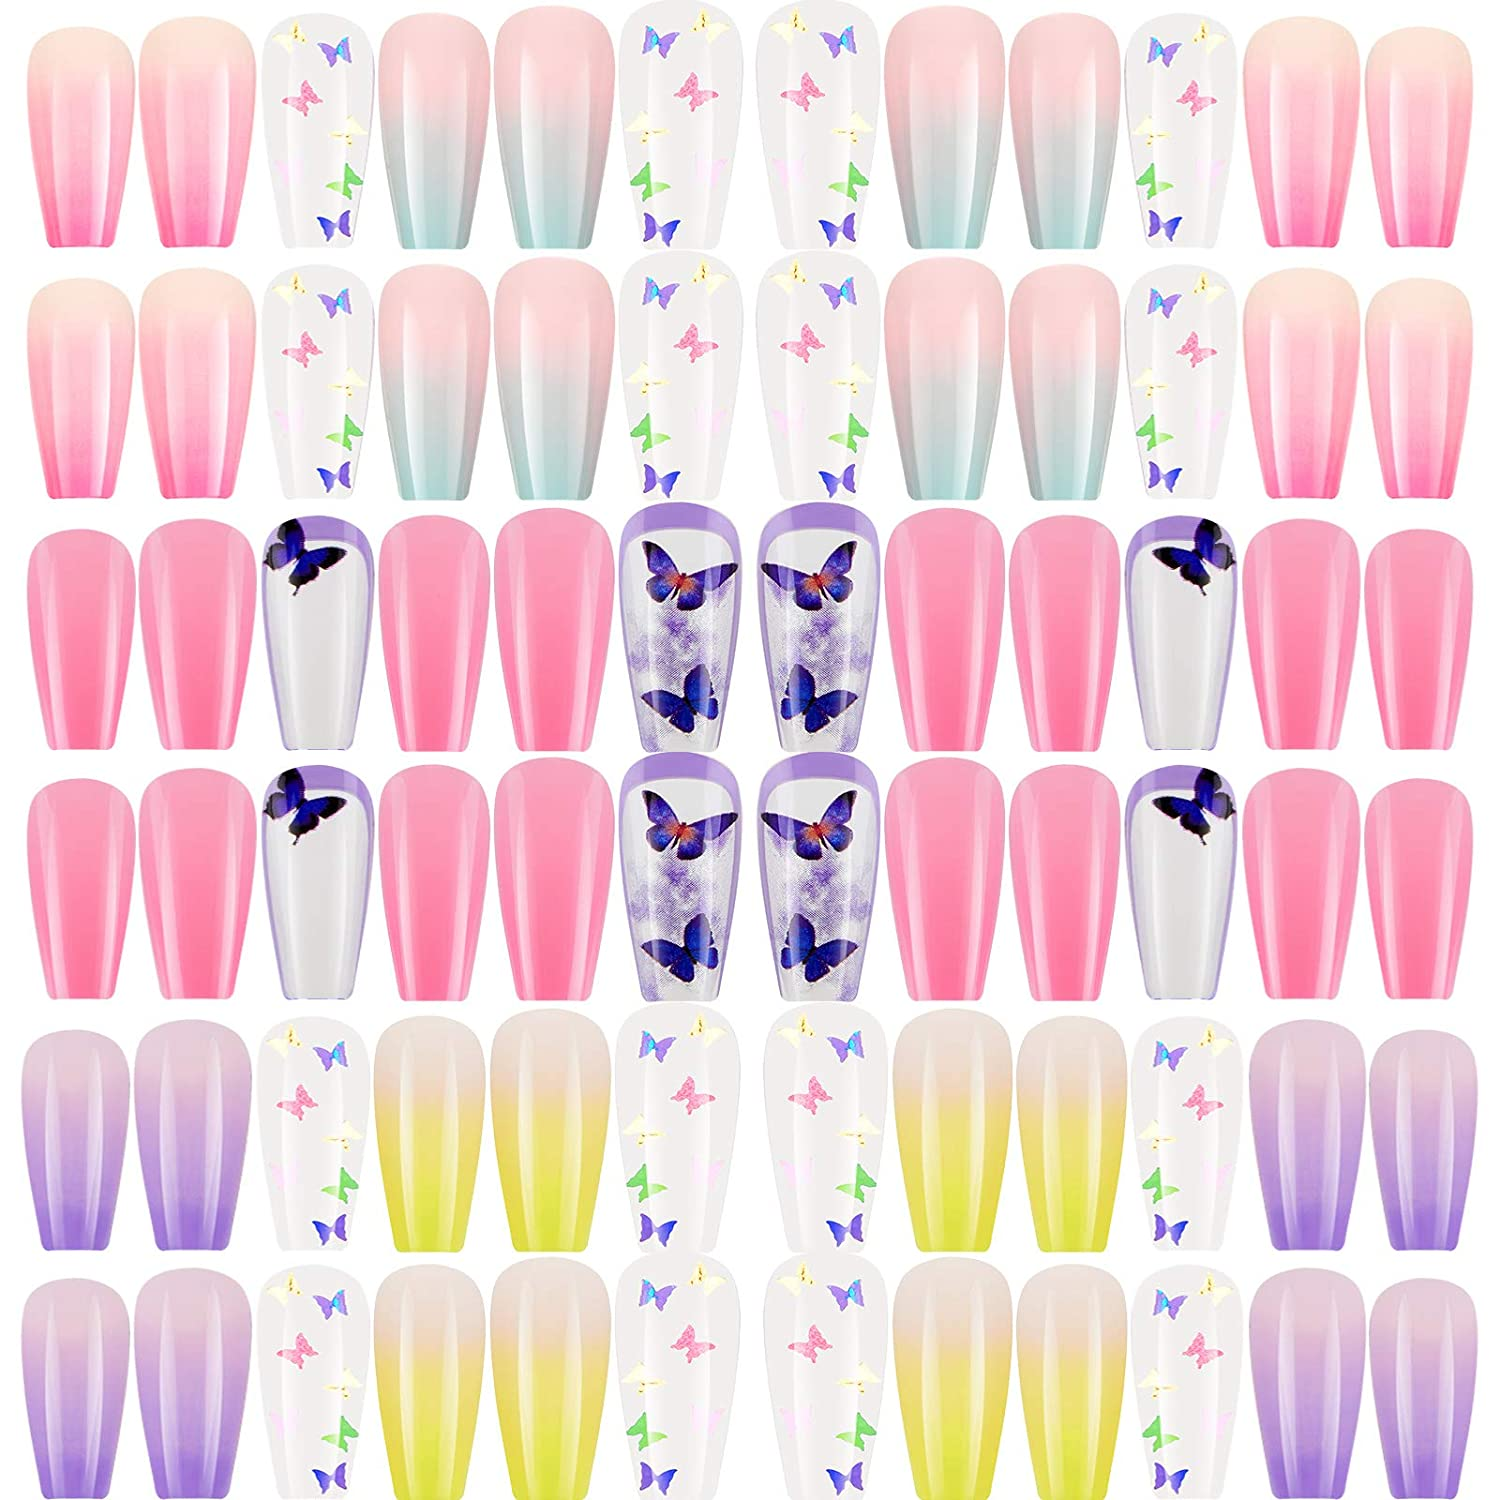 72 Max 79% OFF Pieces 3 Sets Long Ballerina on 4 years warranty Coffin Nails Press